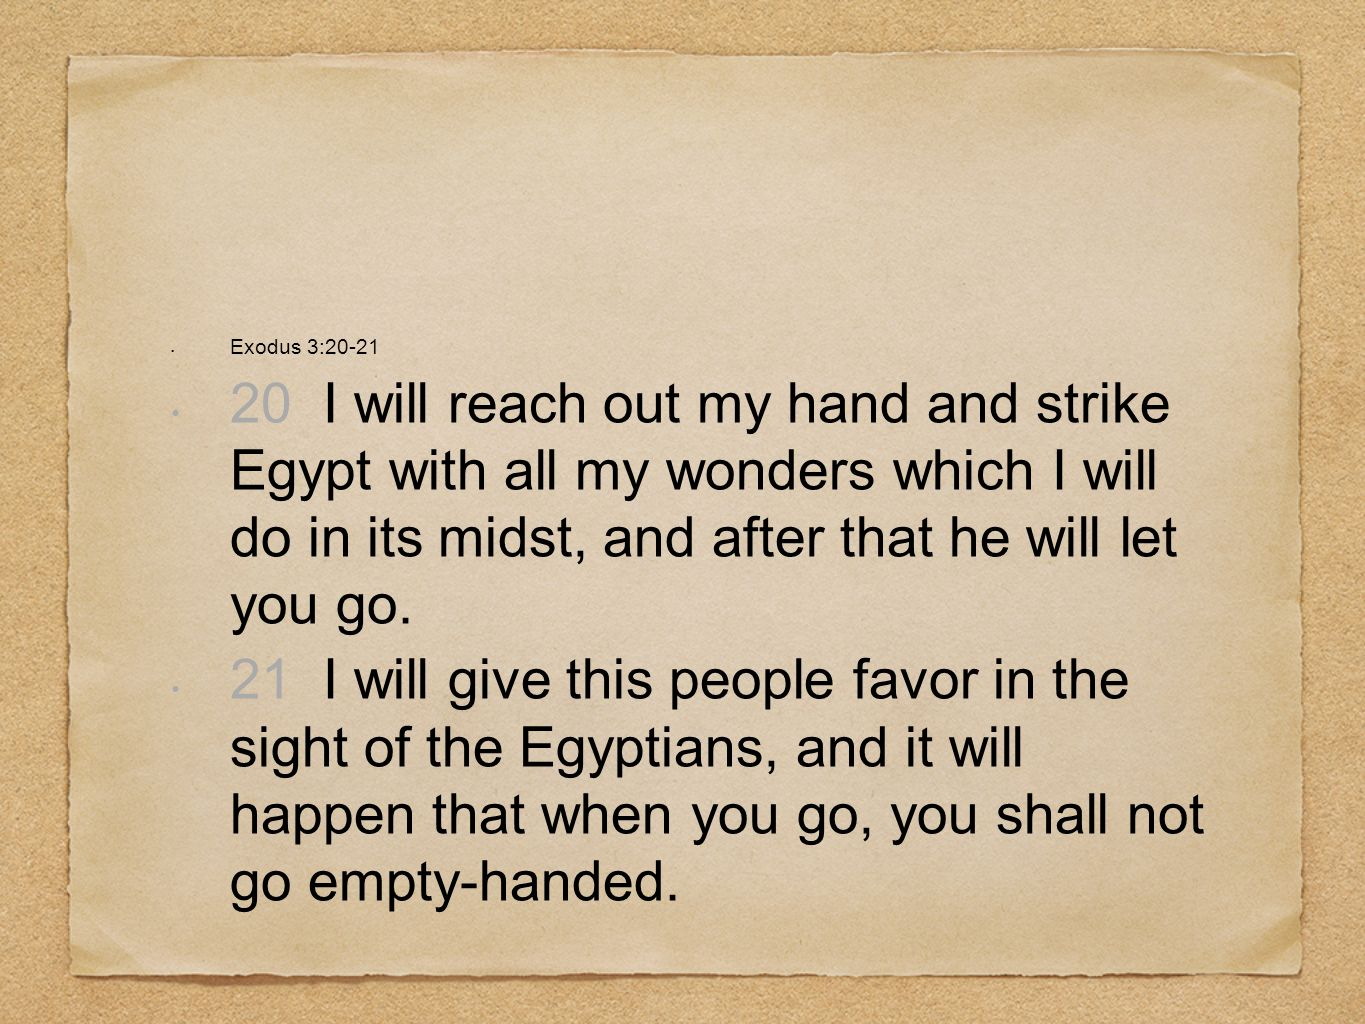 Exodus 3: I will reach out my hand and strike Egypt with all my wonders which I will do in its midst, and after that he will let you go.